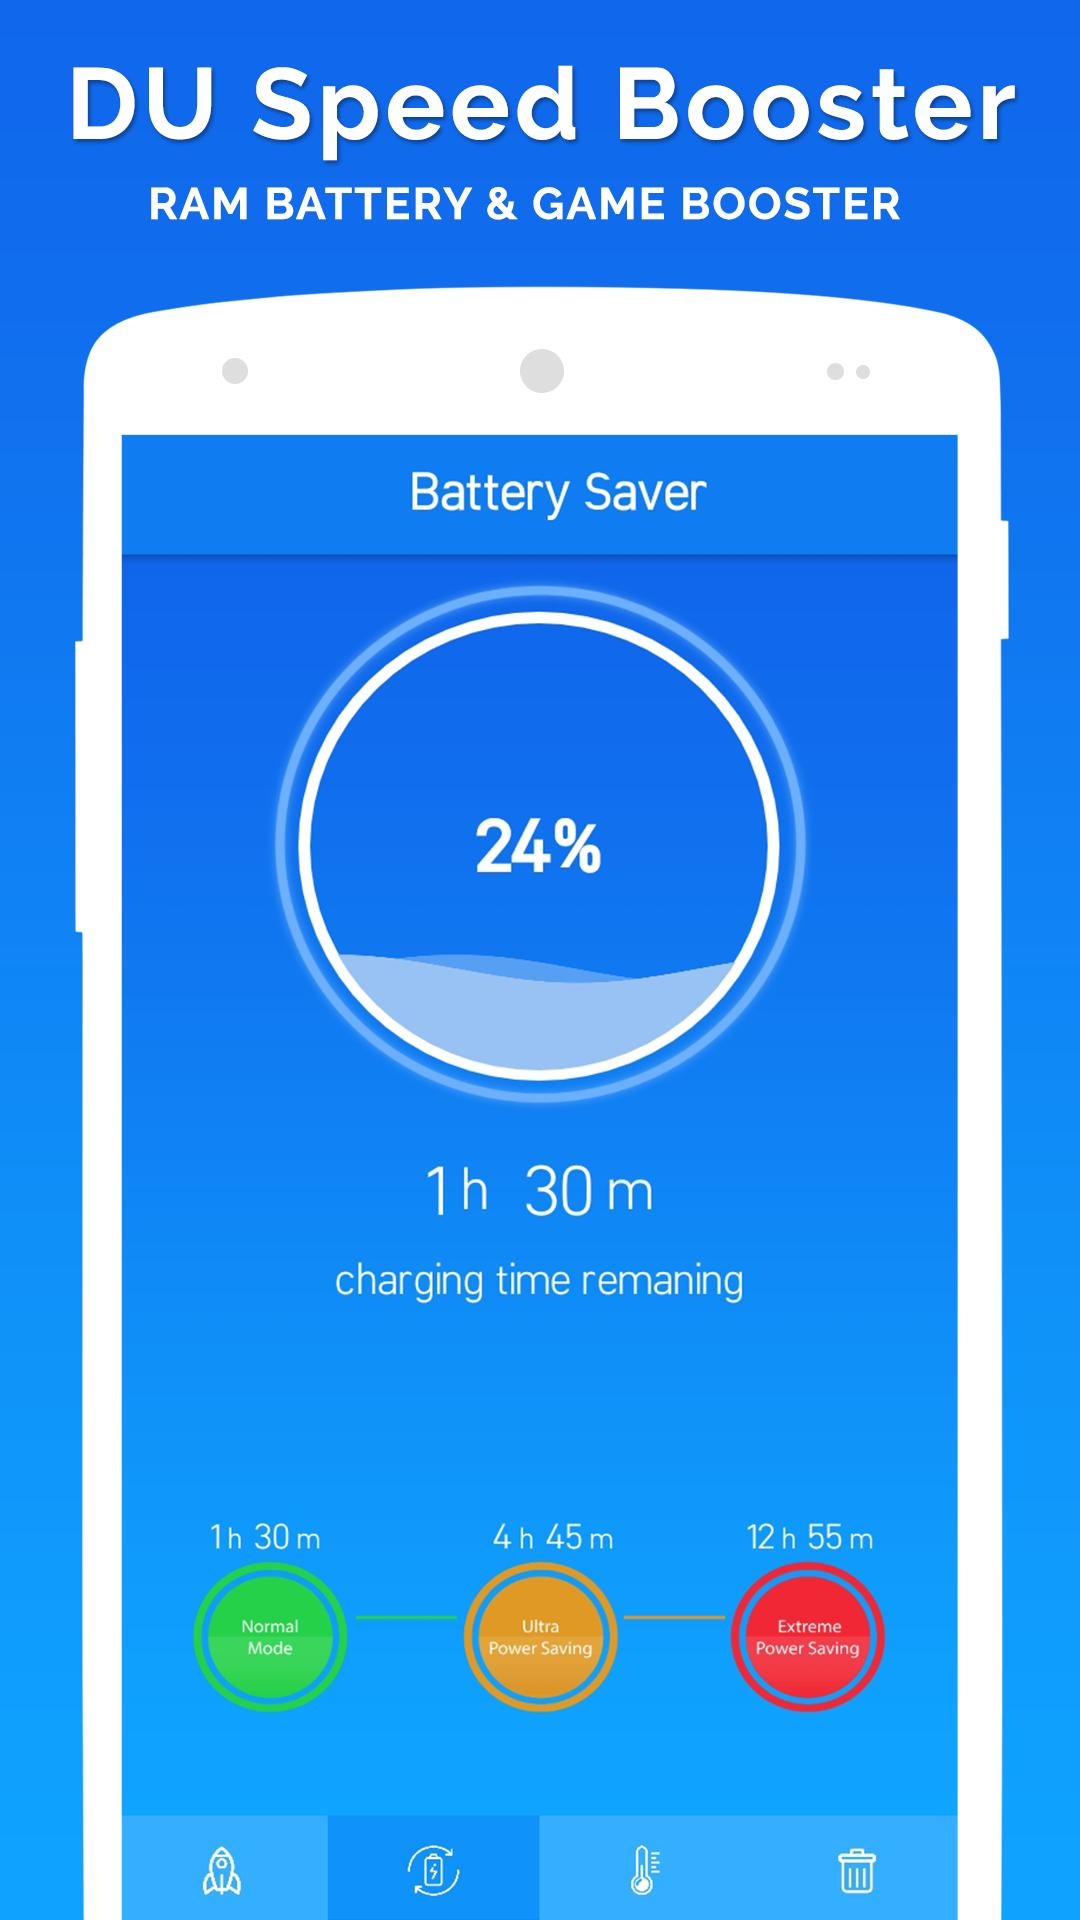 Du Speed Booster Ram Battery Game Booster For Android Apk Download